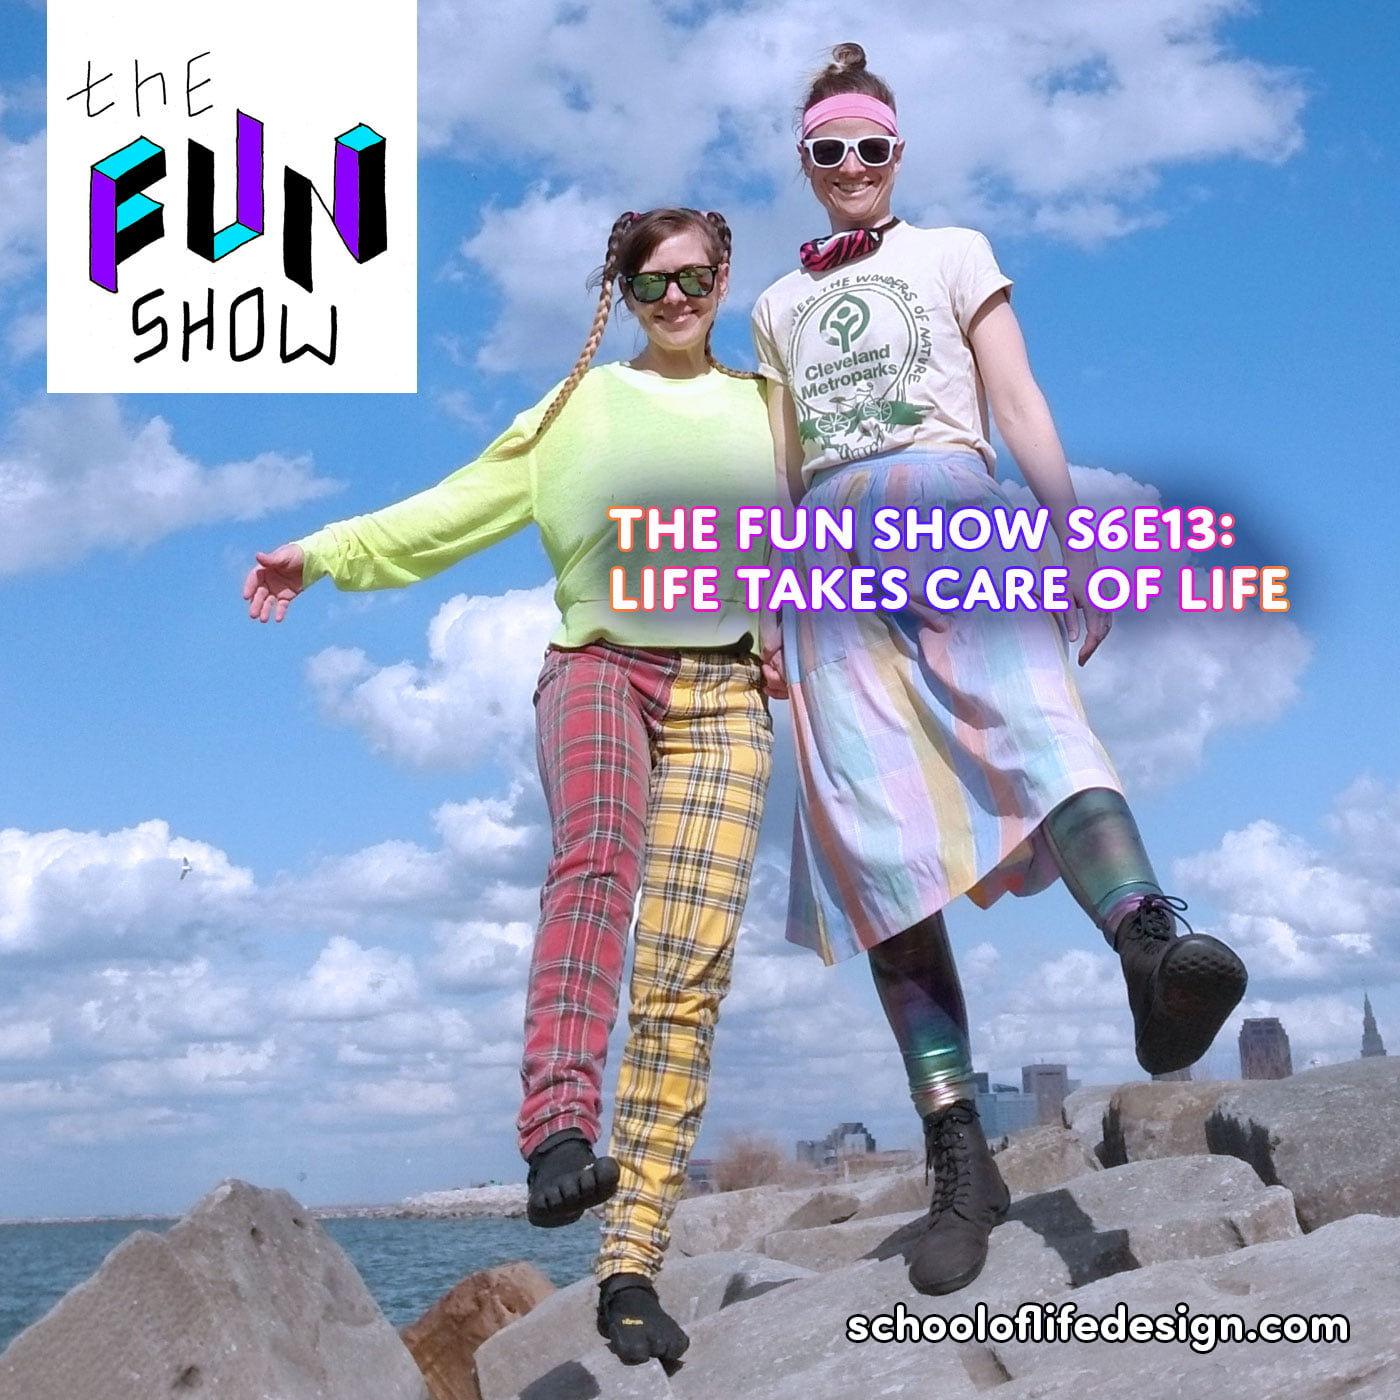 The Fun Show S6E13: Life Takes Care of Life